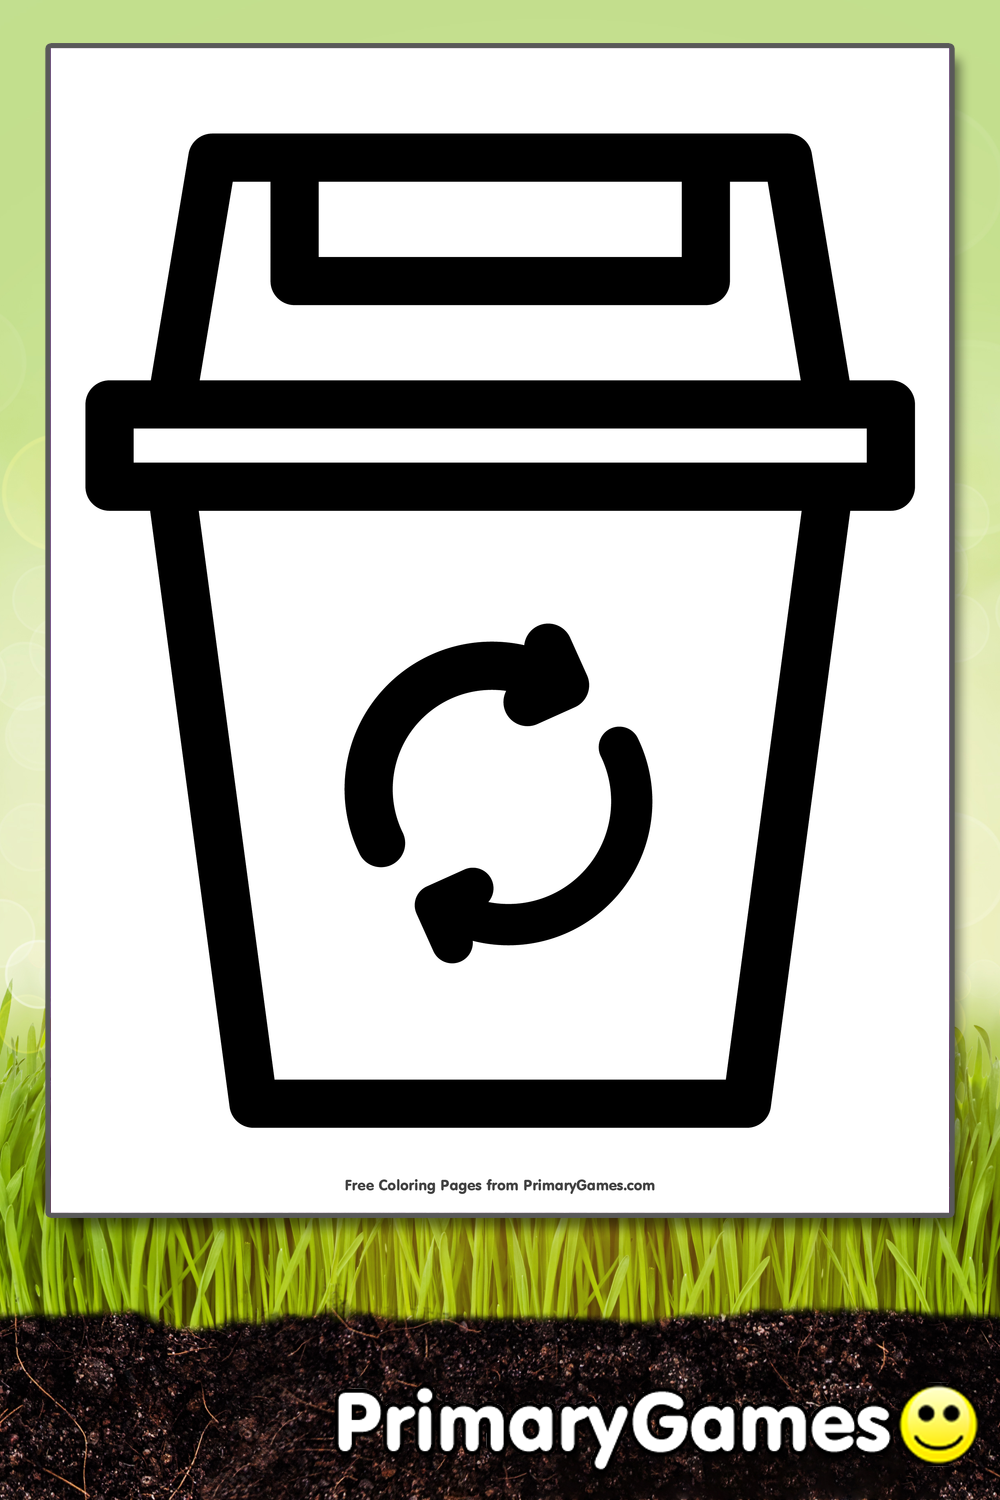 Recycle Bin Coloring Page Free Printable Pdf From Primarygames